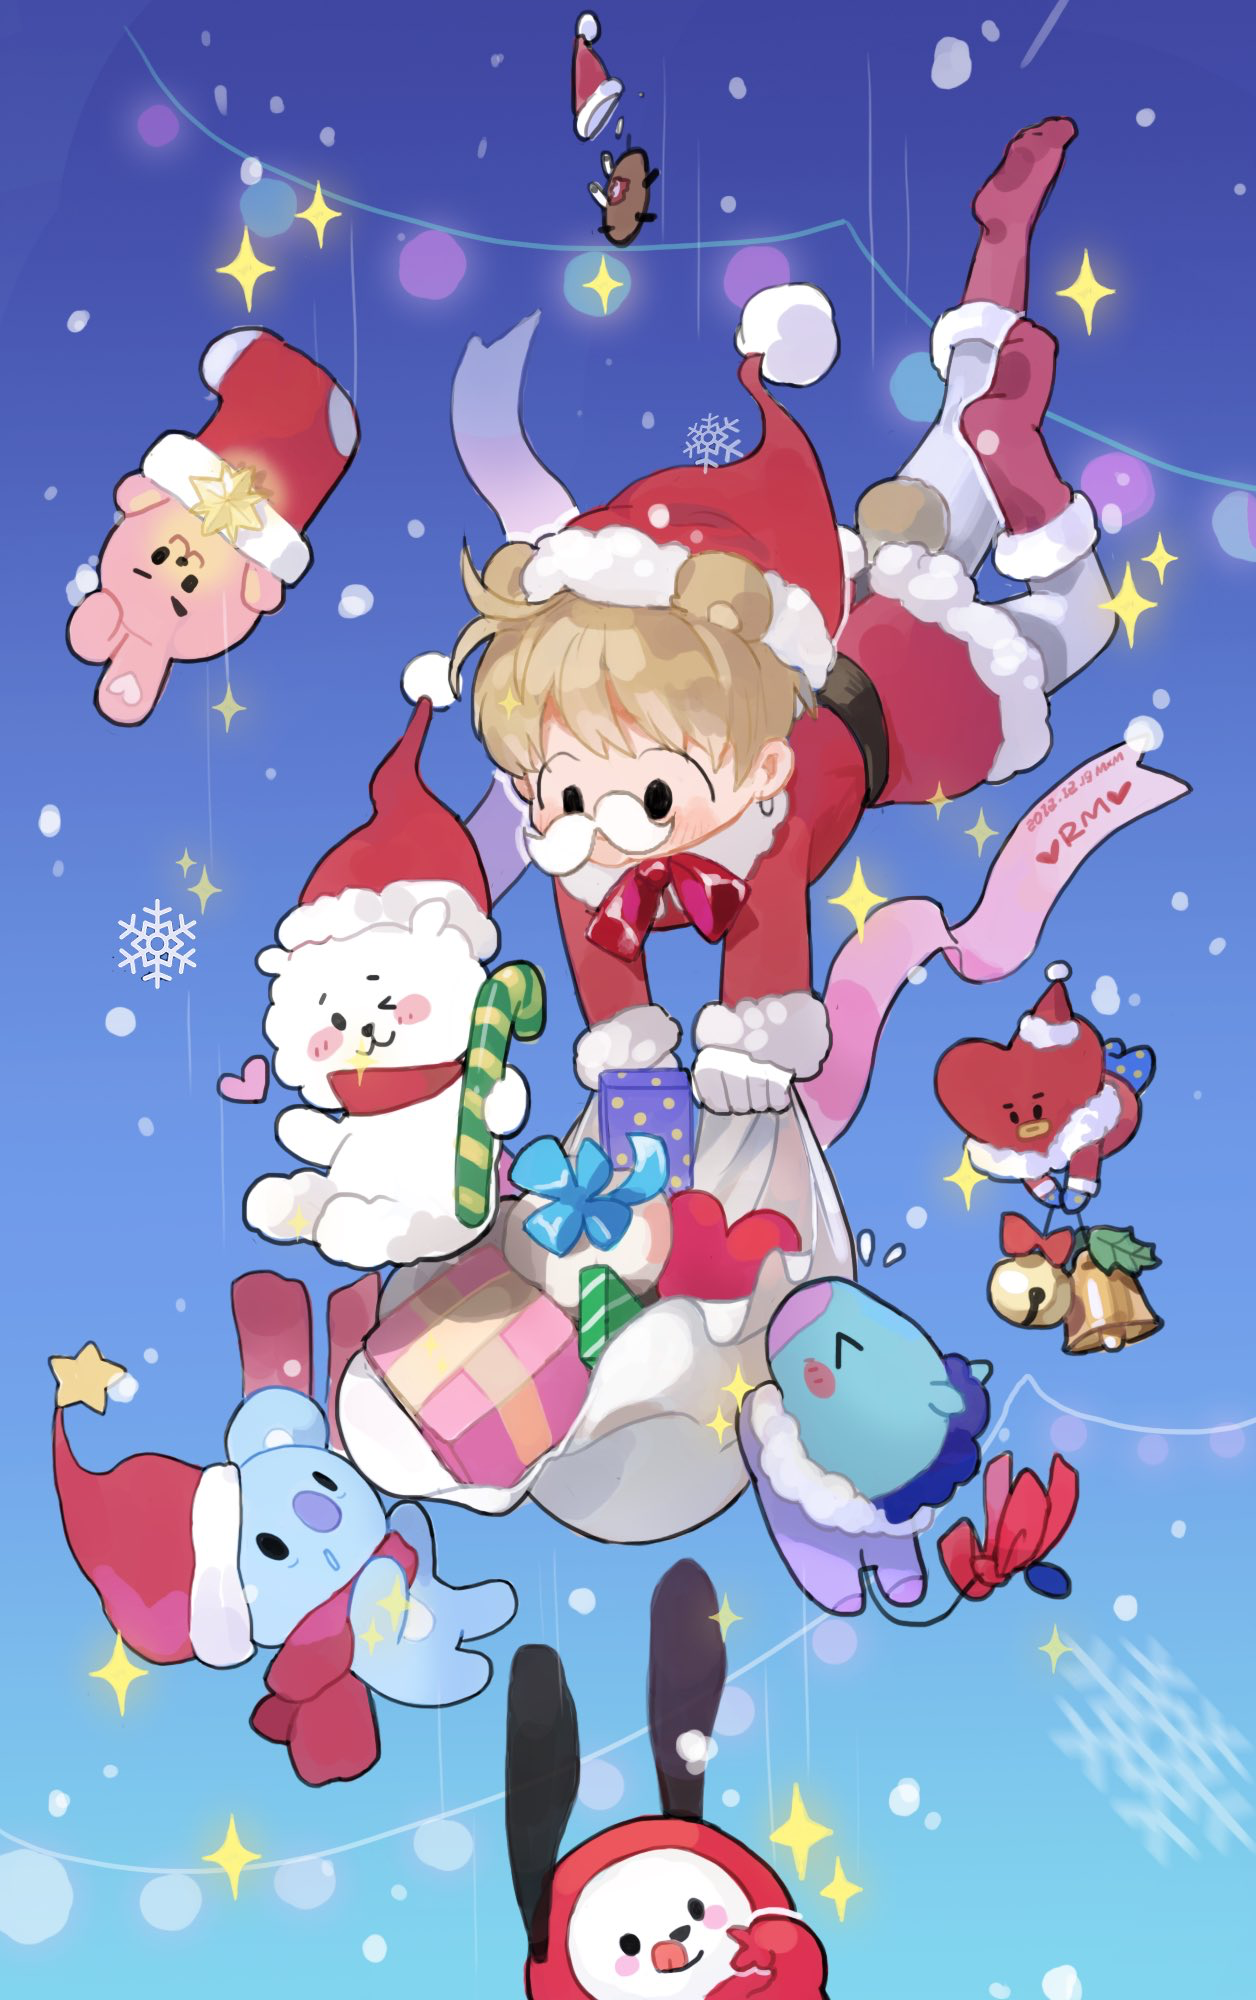 1256x2000 Bt21 Christmas Wallpaper Related Keywords & Suggestions ...